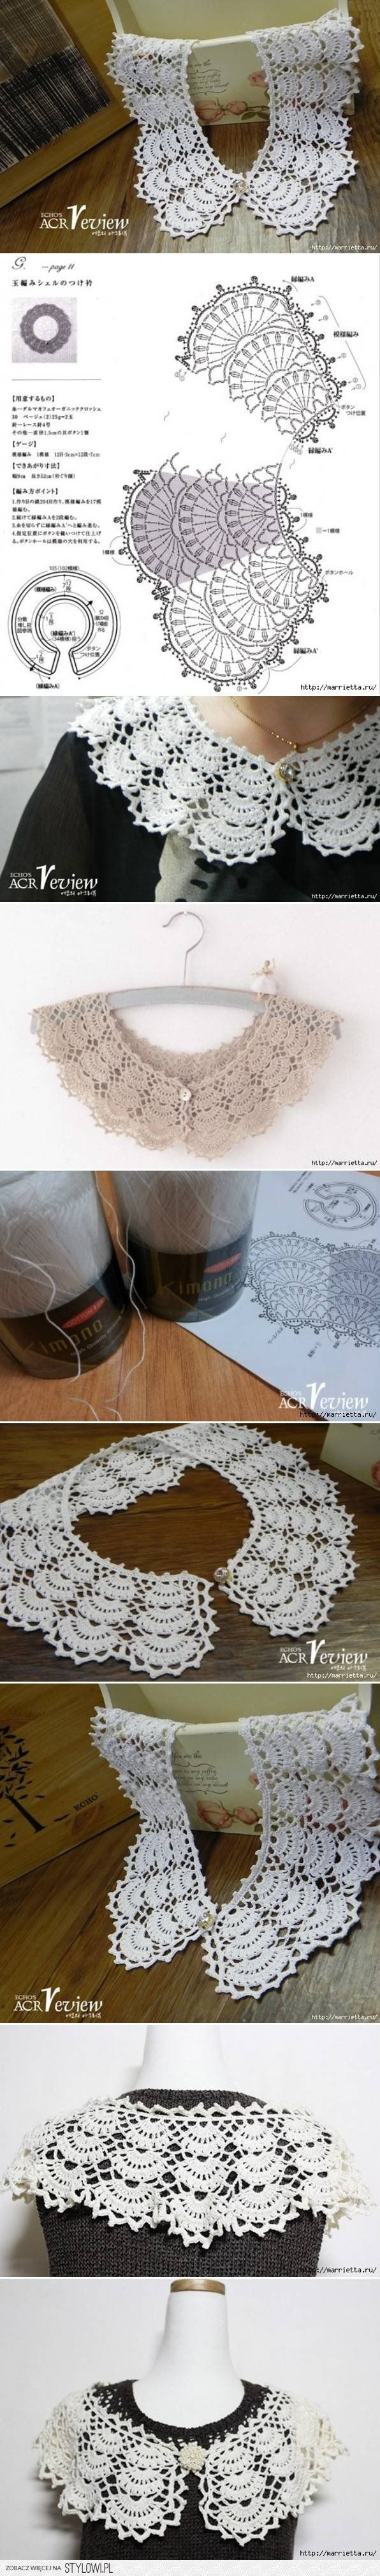 DIY Open Work Crochet Collar DIY Projects | UsefulDIY.c… na Stylowi.pl bel colletto con schema.